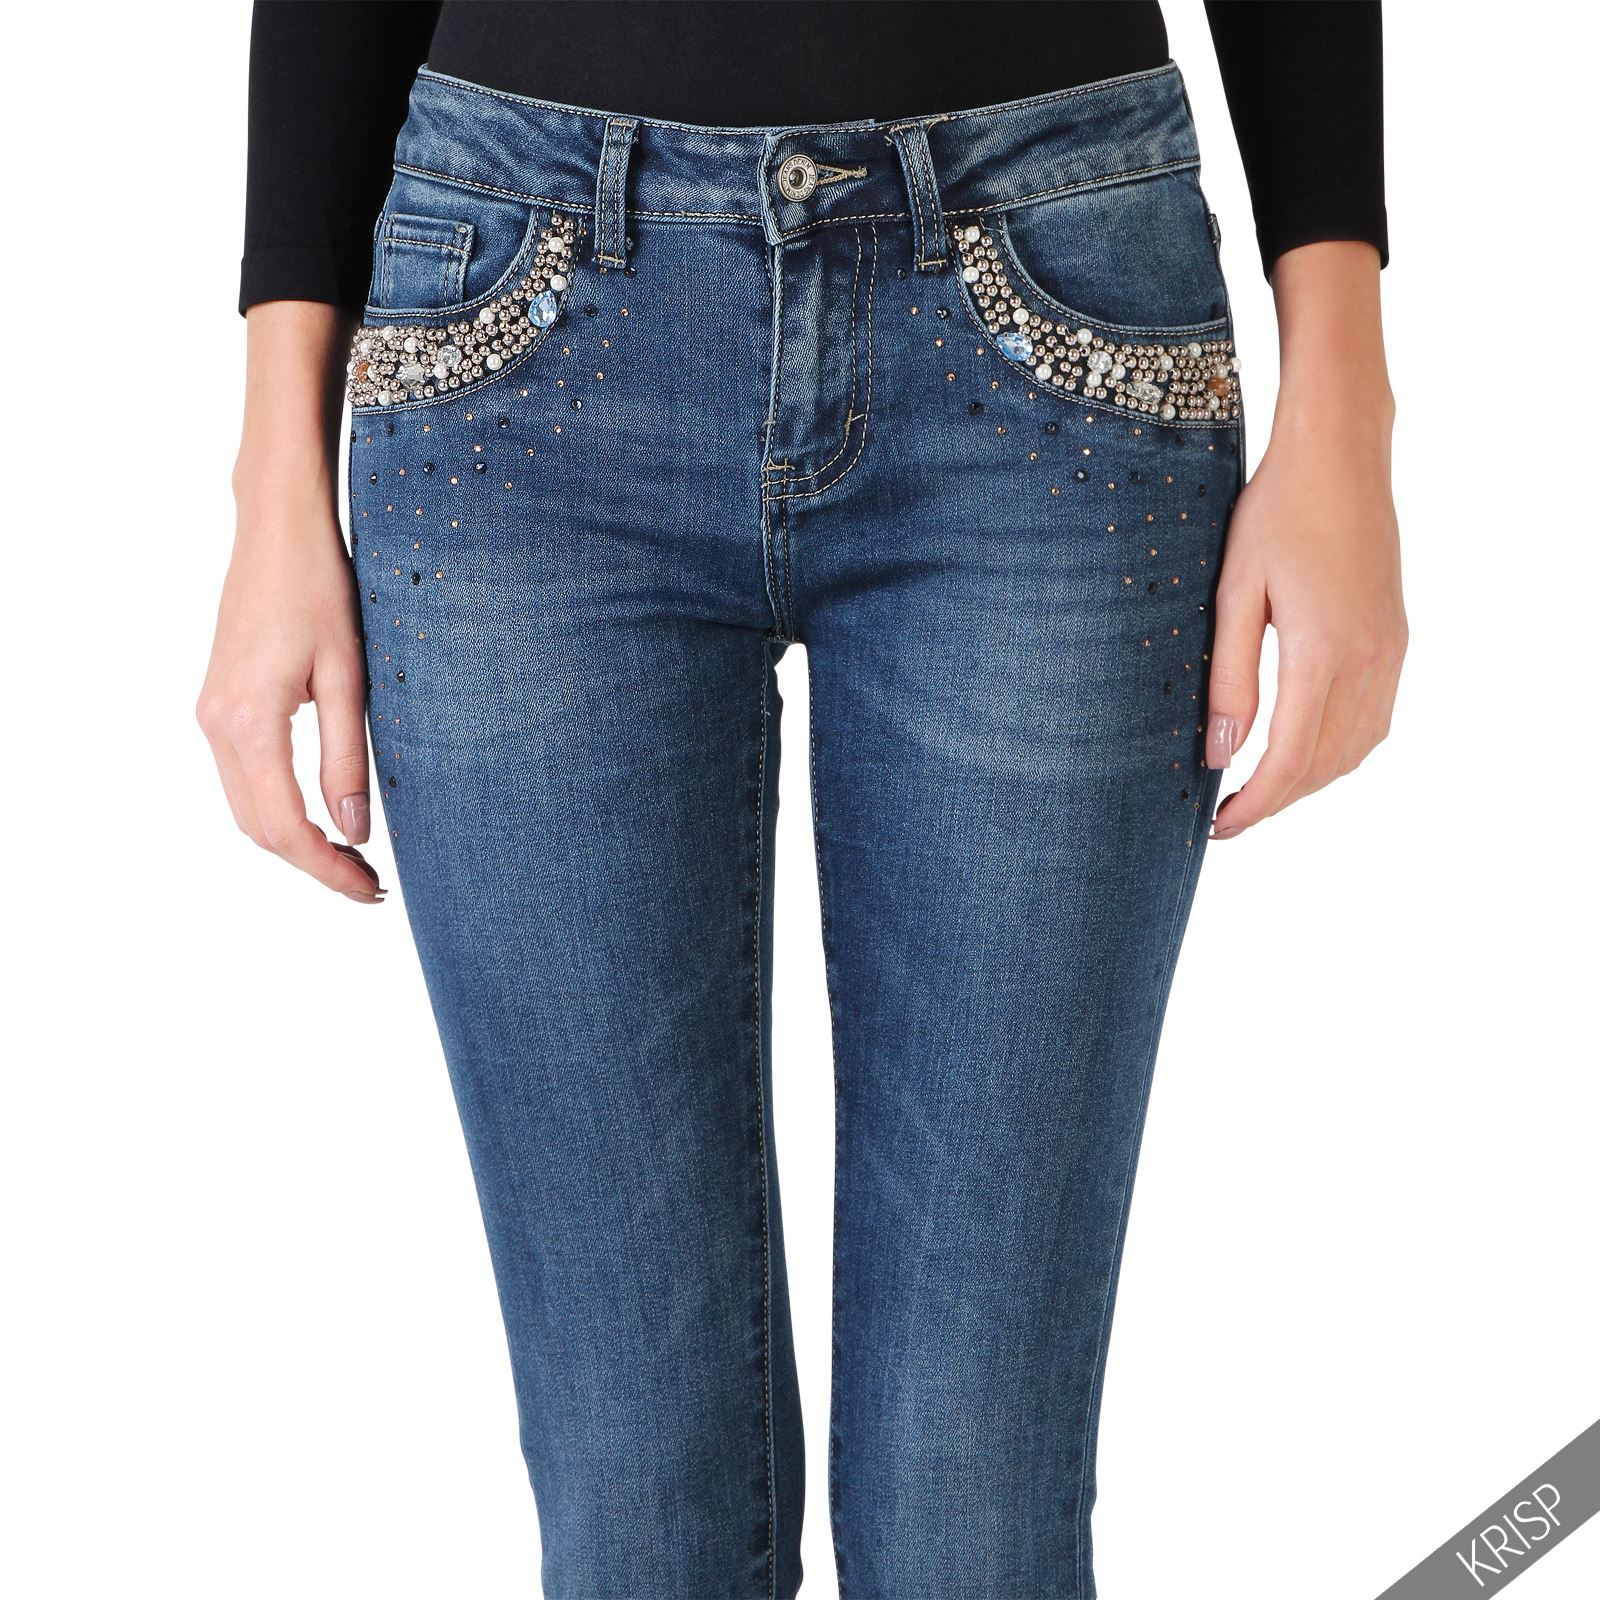 Free shipping BOTH ways on high waist skinny jeans, from our vast selection of styles. Fast delivery, and 24/7/ real-person service with a smile. Click or call